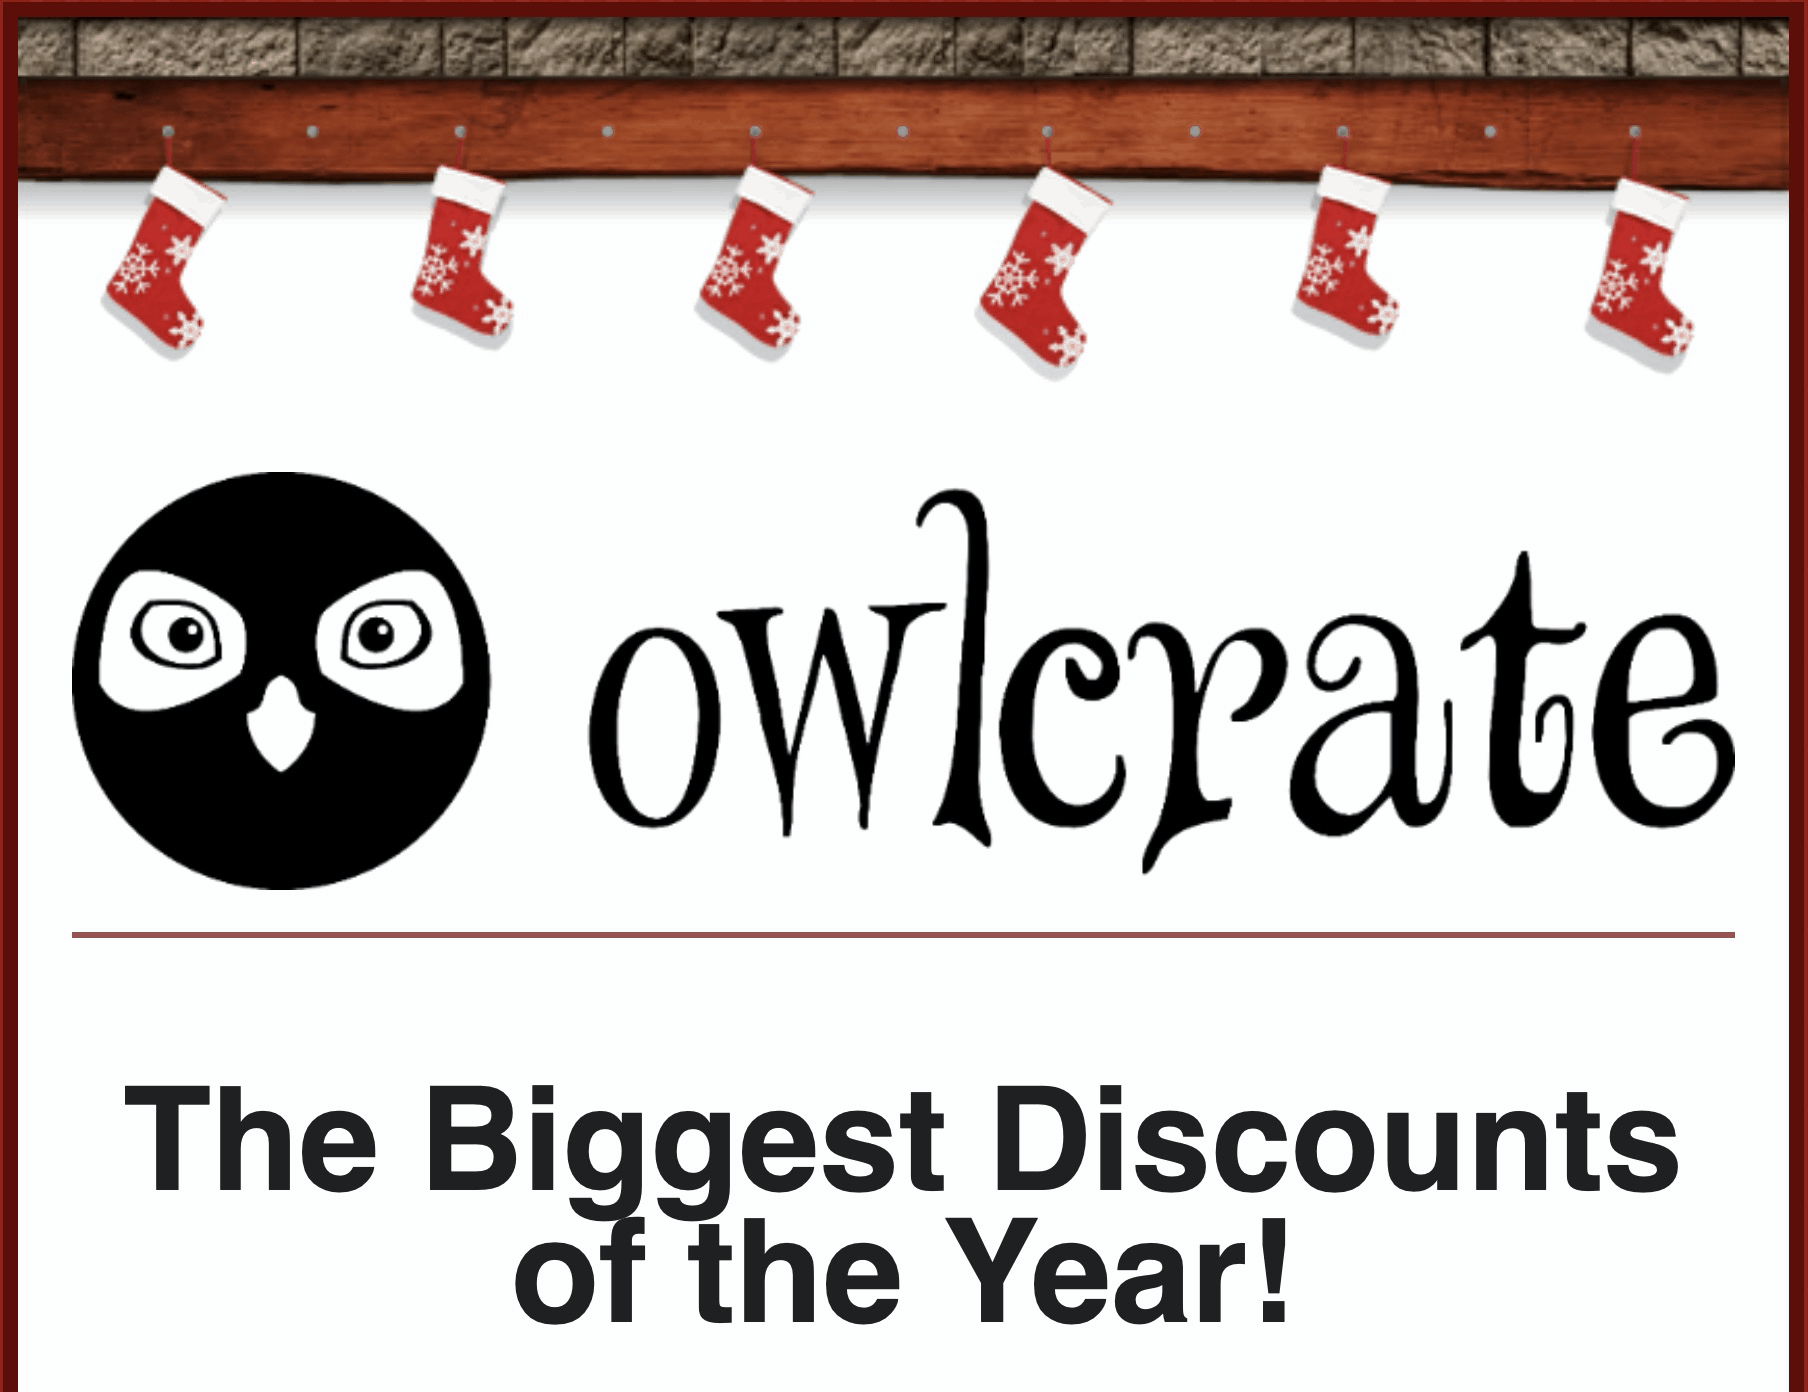 OwlCrate Cyber Monday Sale: Save 30% off on Past Boxes & Goodies!